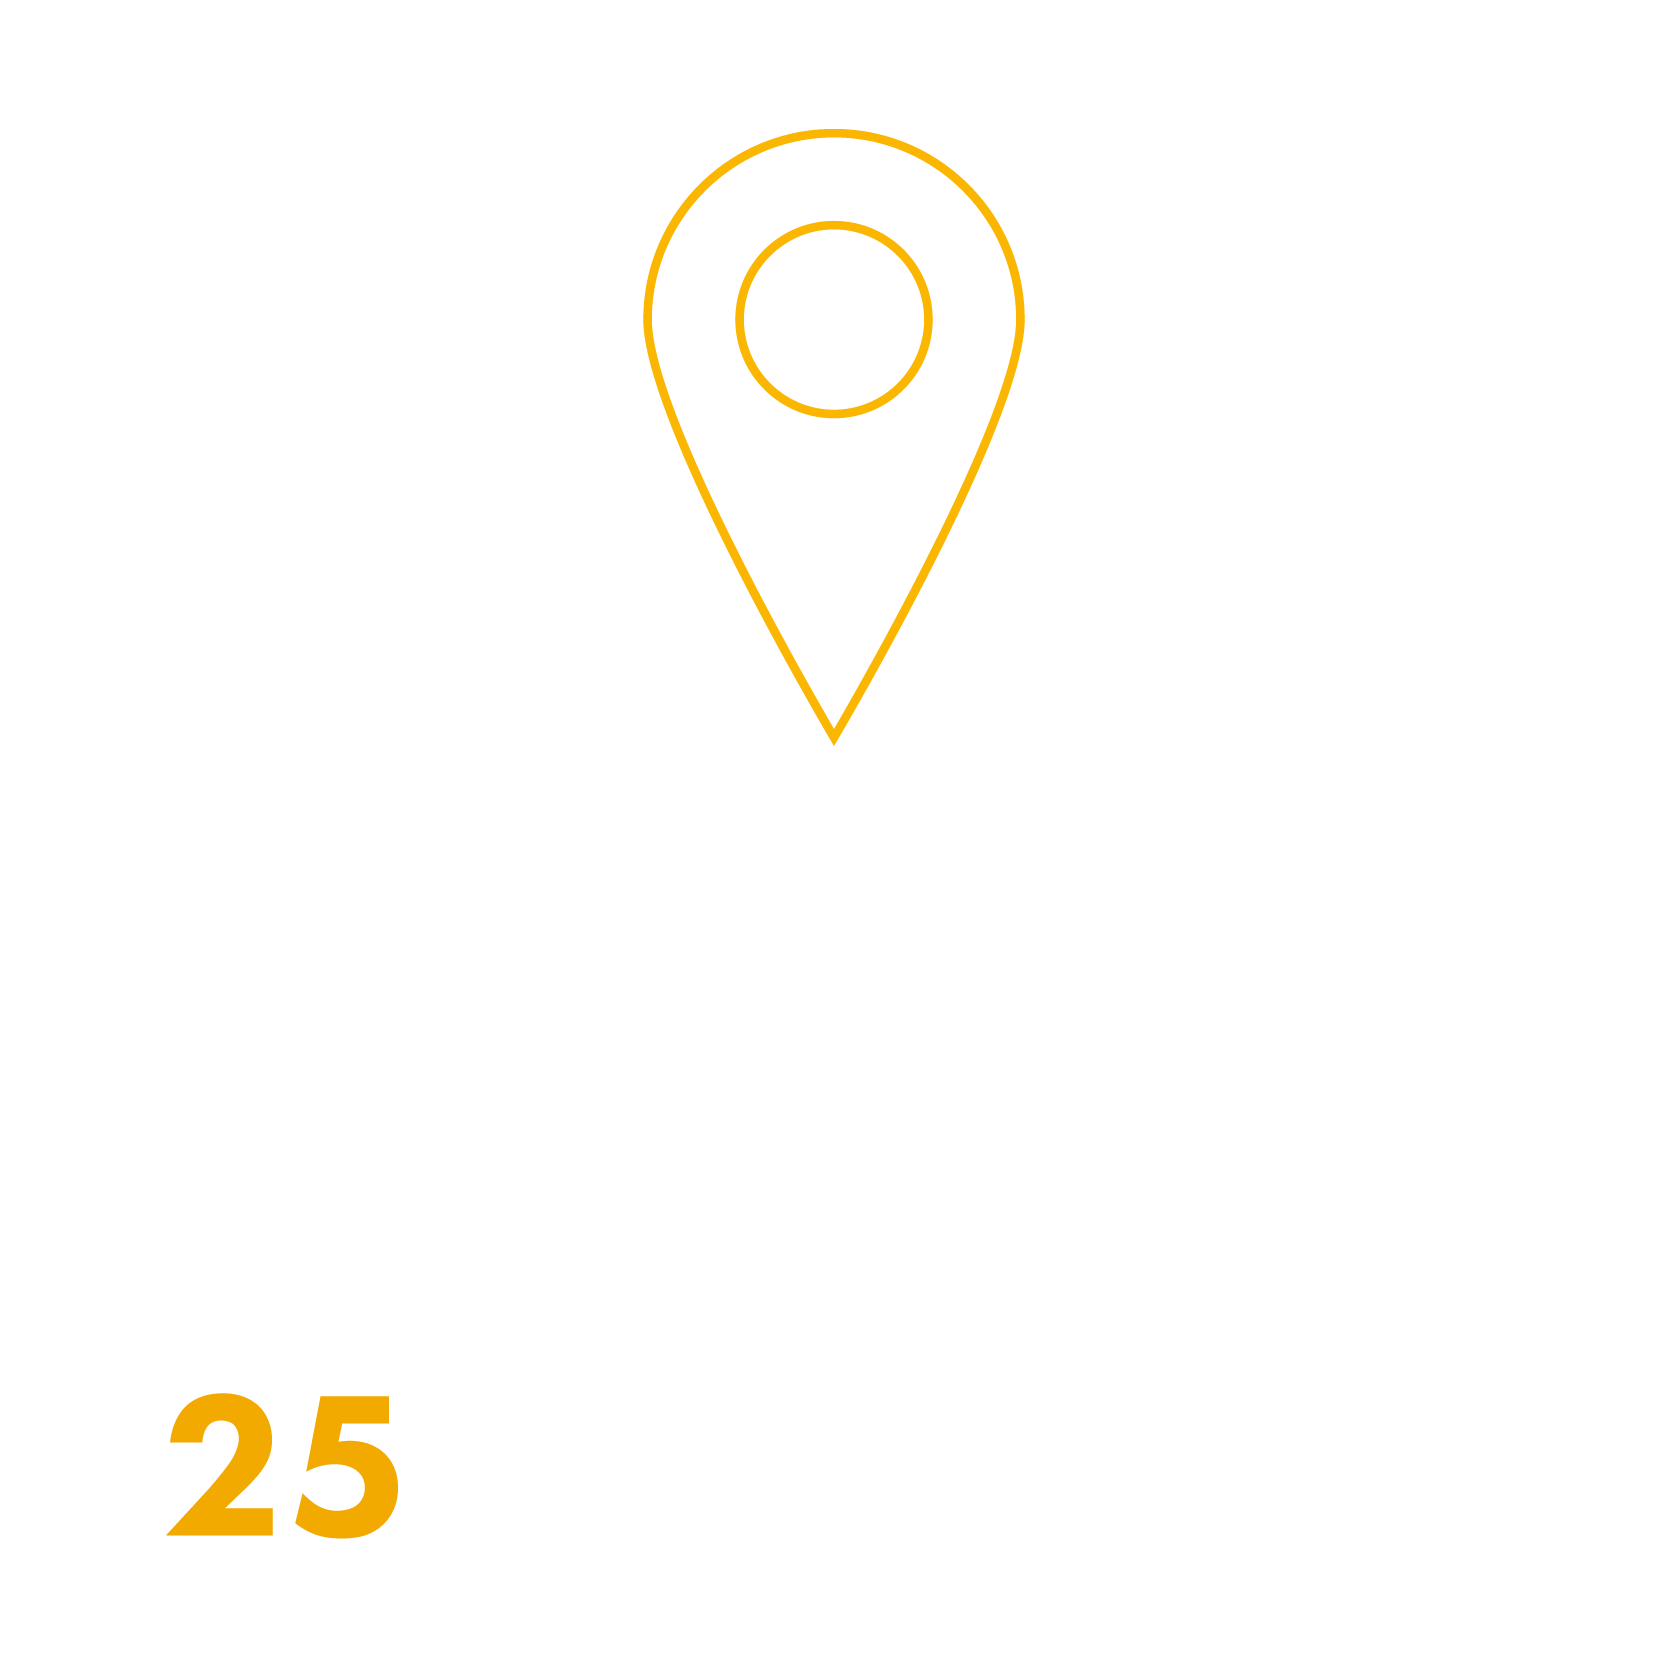 SAT-7 25 Countries